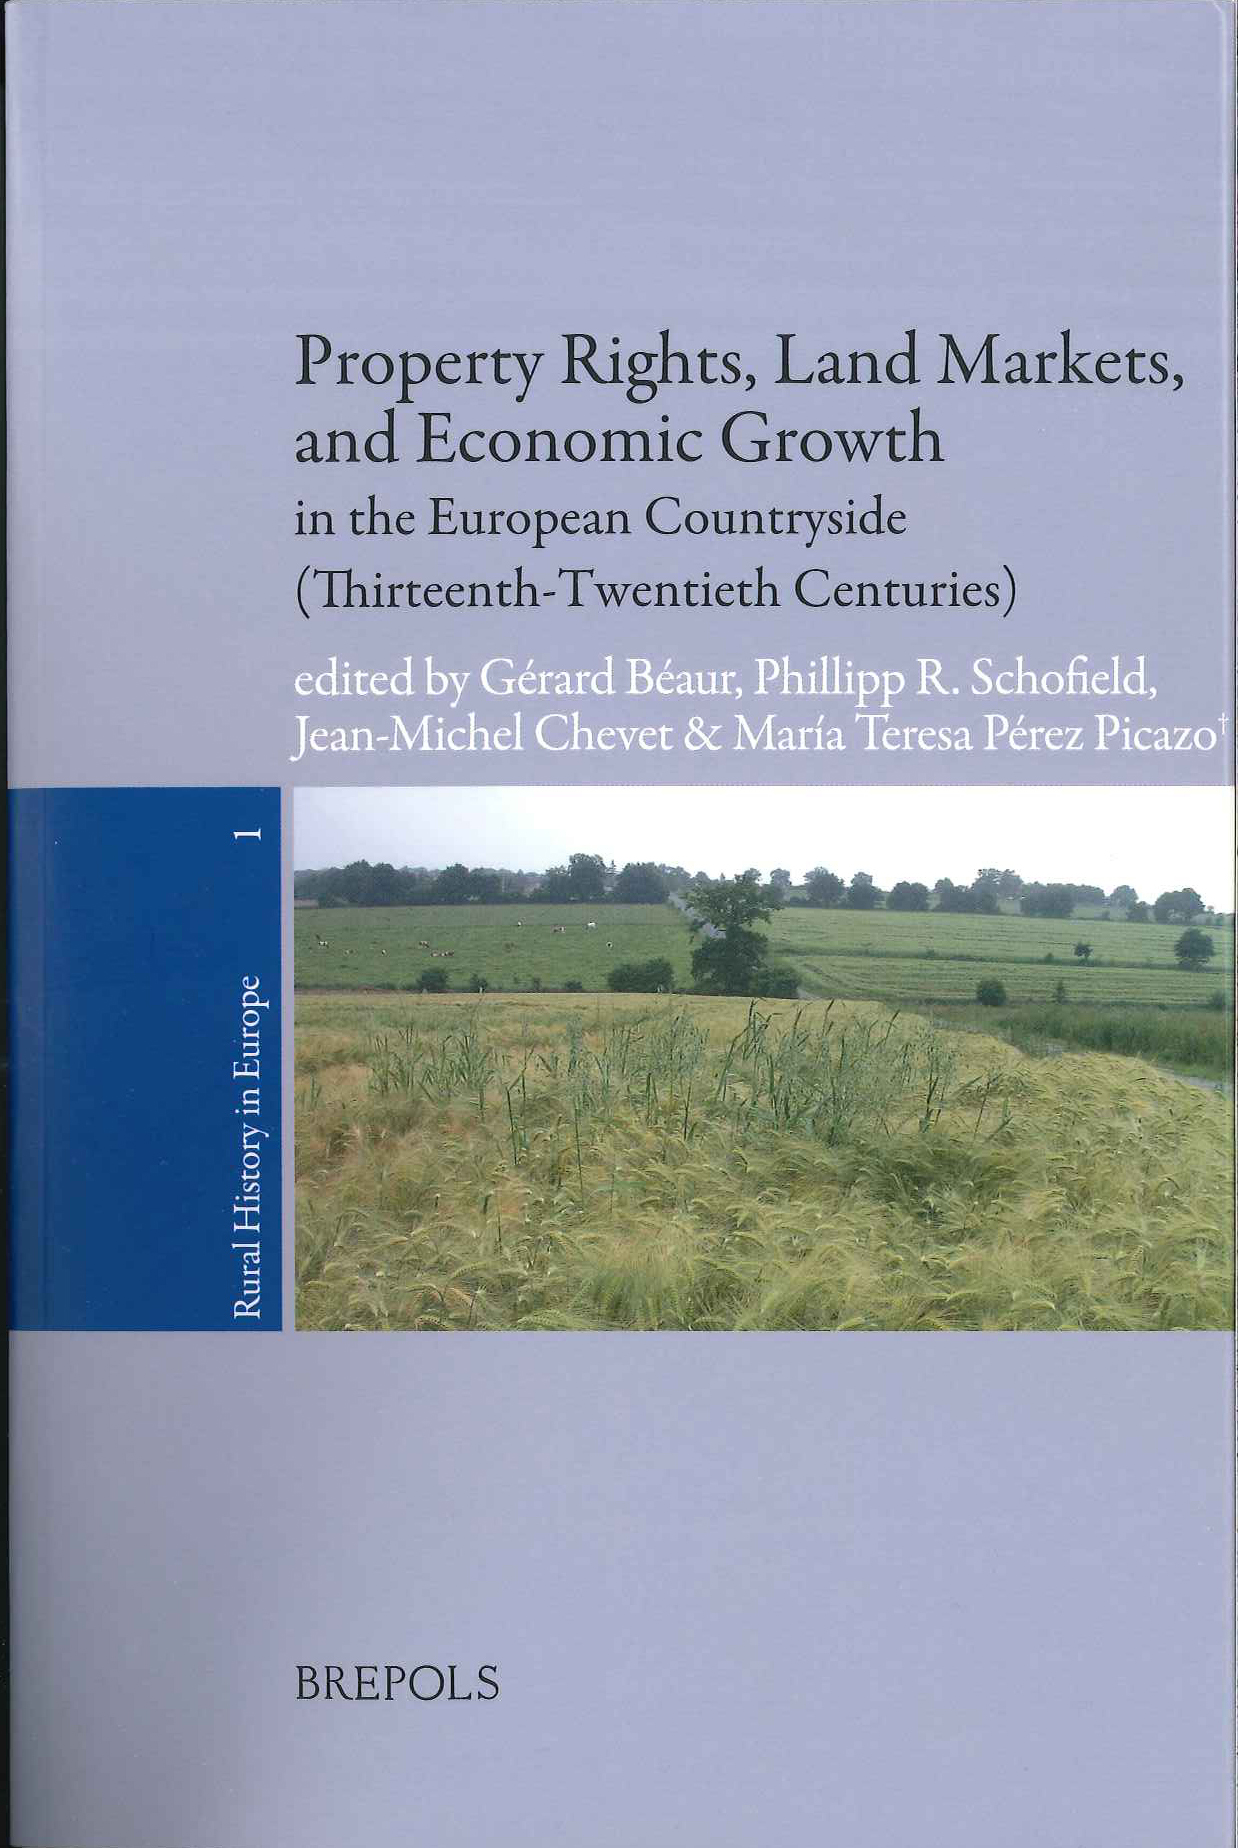 Property Rights, Land Markets and Economic Growth in the European Countryside (Thirteenth-Twentieth Centuries)